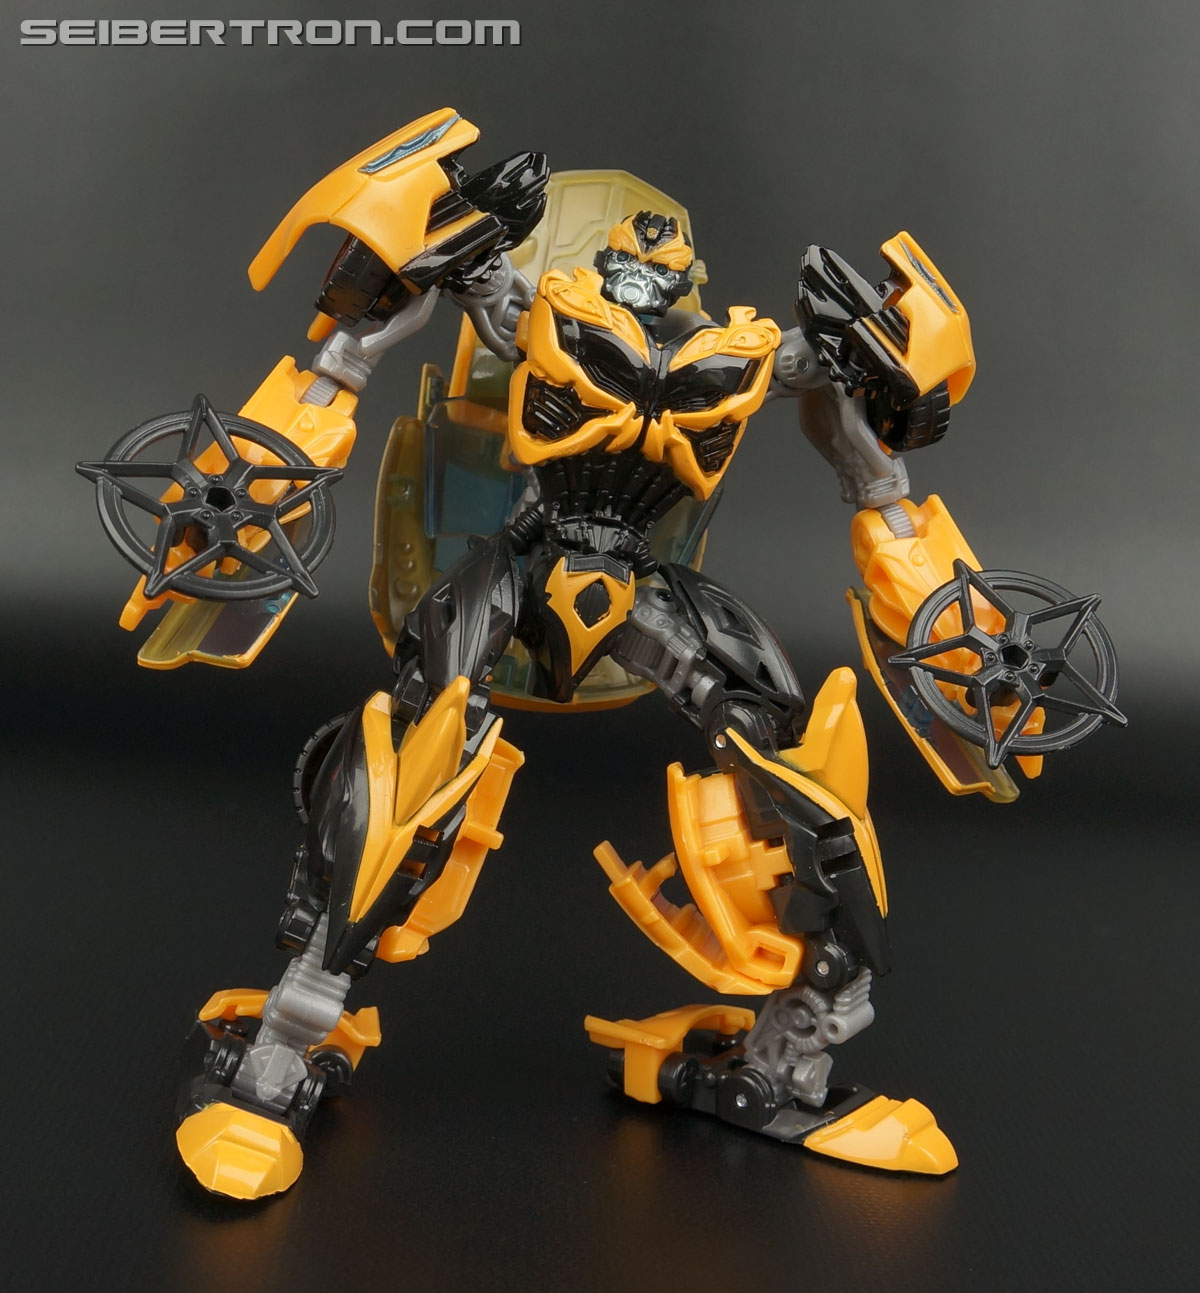 Transformers Age of Extinction: Generations Bumblebee (Image #119 of 190)